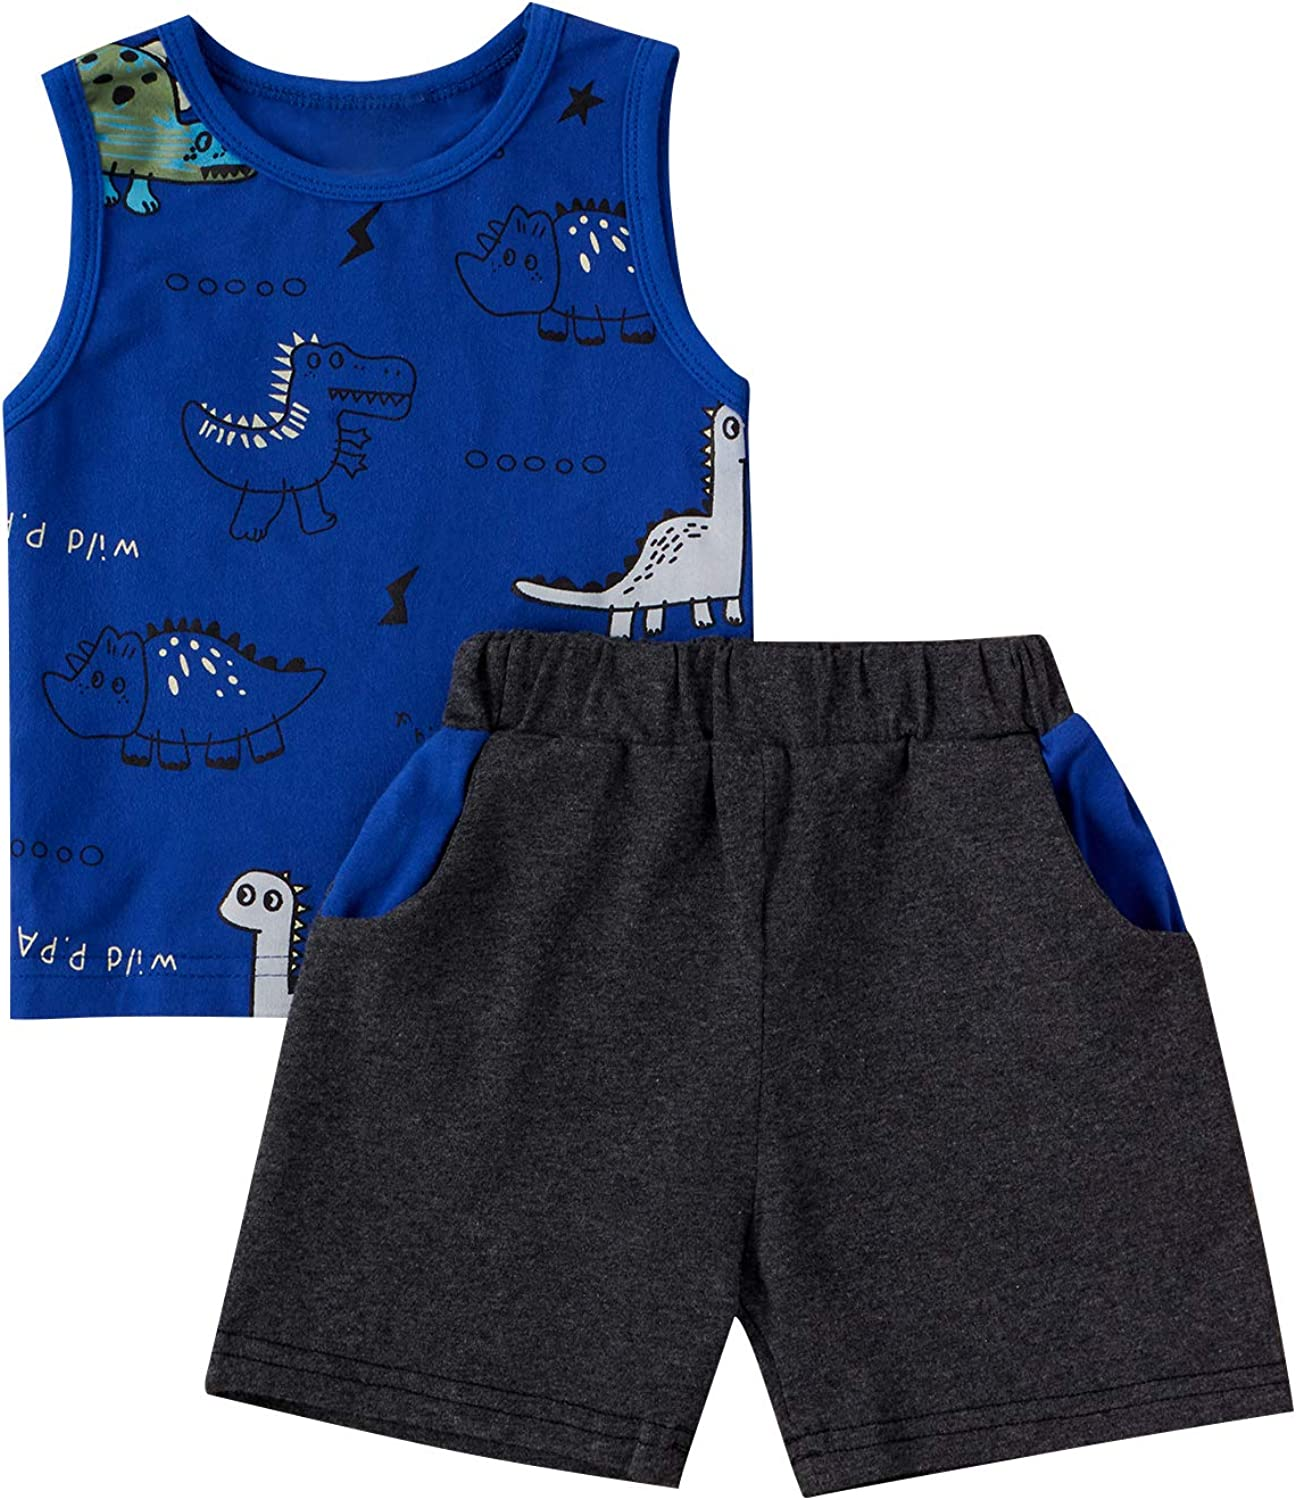 Kid's Dinosaur Two Piece Set, Sleeveless Round Neck Printed Tops Elastic Head Short Pants for Summer